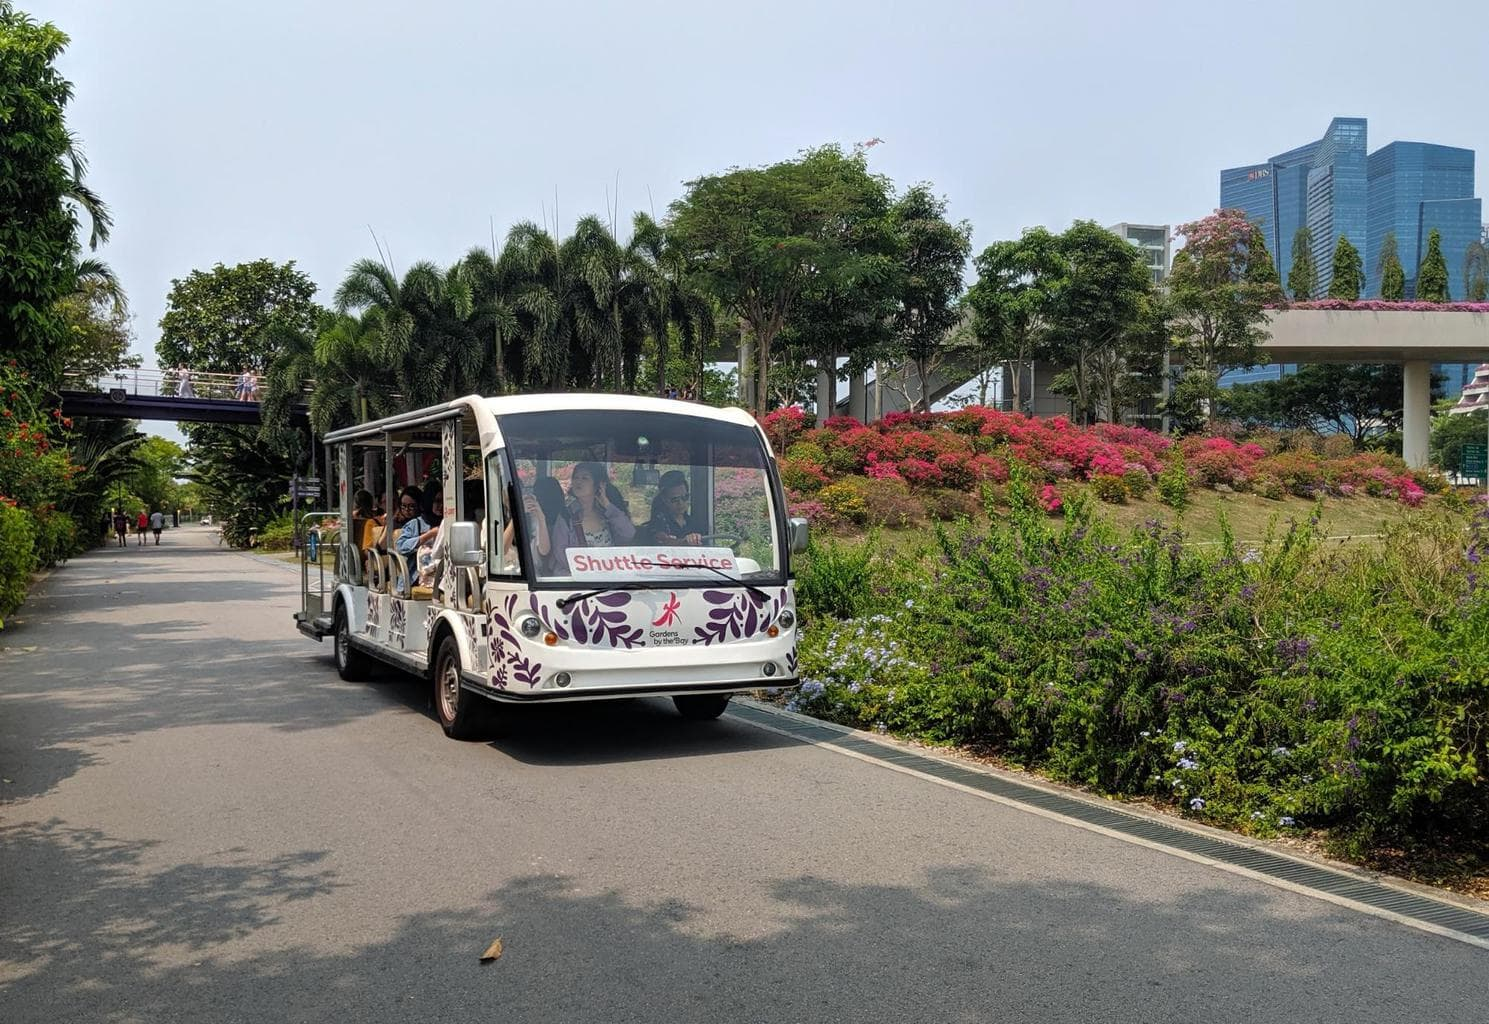 Shuttle service at Gardens by the Bay